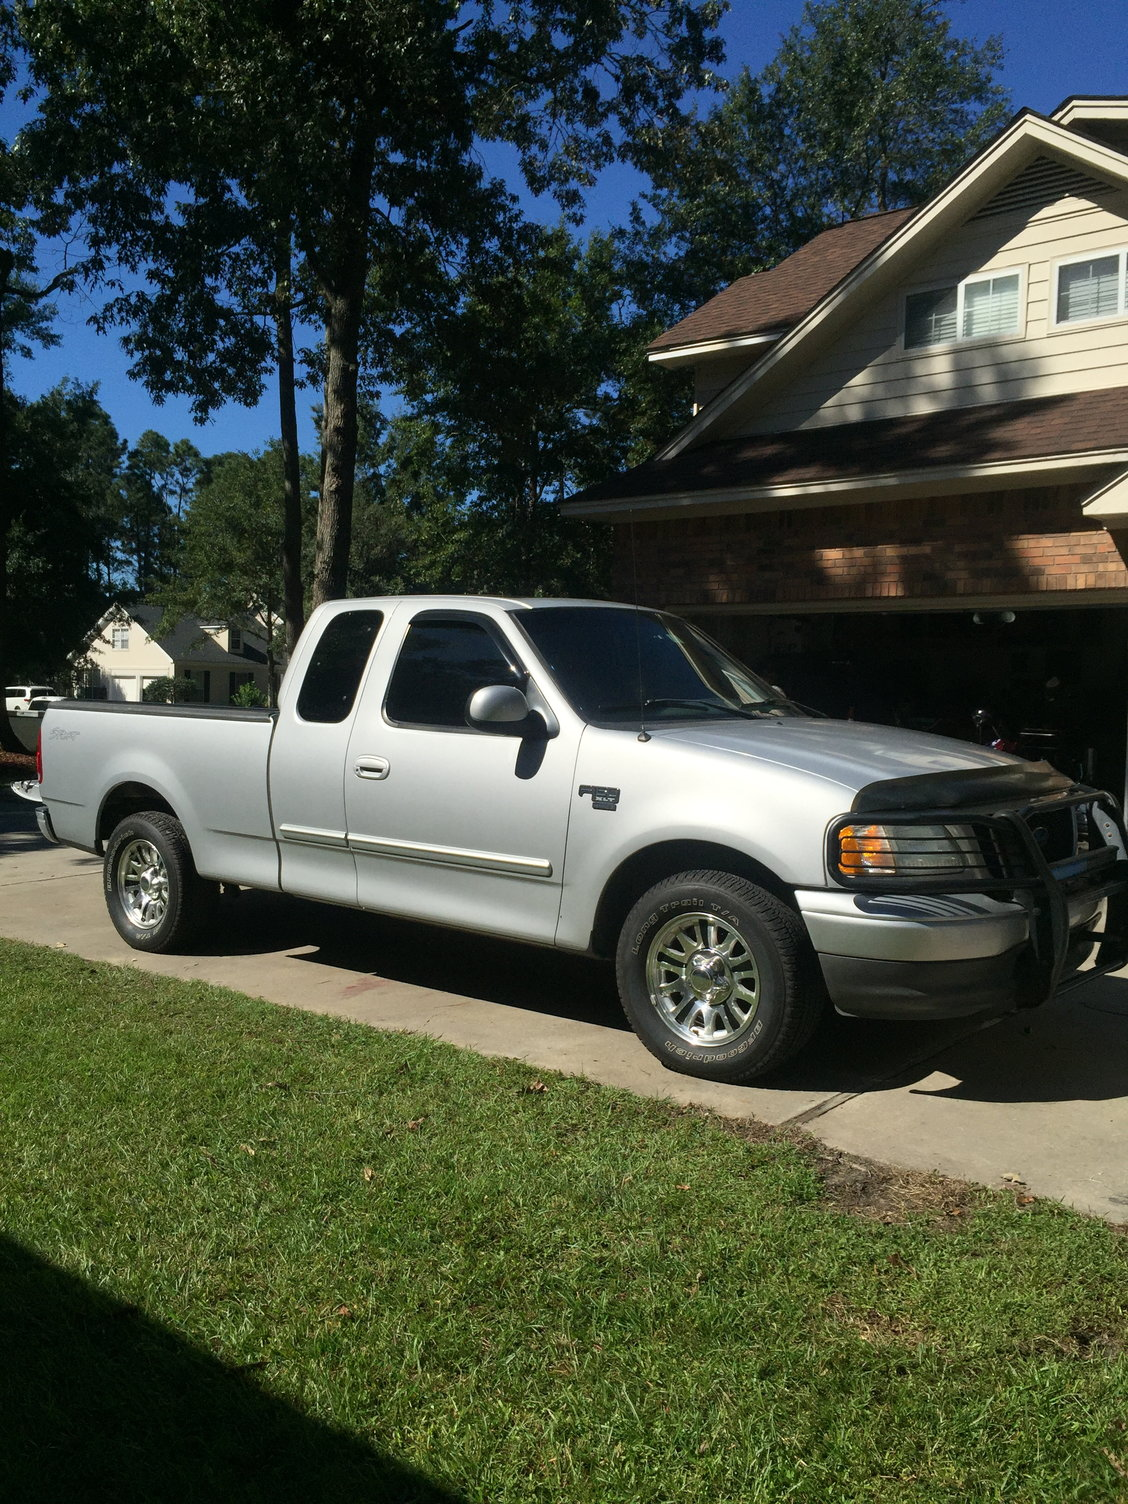 5 4 surging/rough idle - Ford Truck Enthusiasts Forums